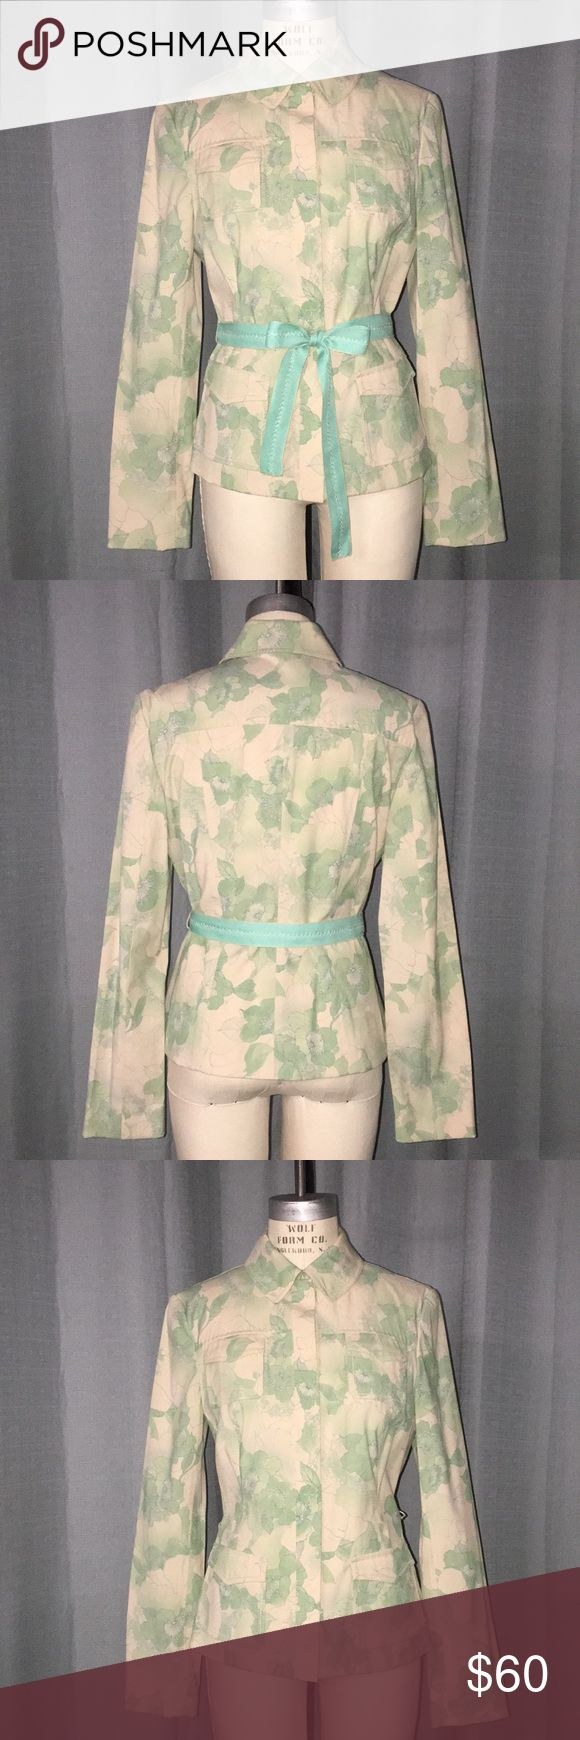 Printed lightweight Jacket Lightweight summer jacket with print. Breast and hip pockets. Snap front closure. Comes with belt.  58/Polyester/28/Viscose/12/Linen/2/Elastane Never been worn. Elie Tahari Jackets & Coats Blazers